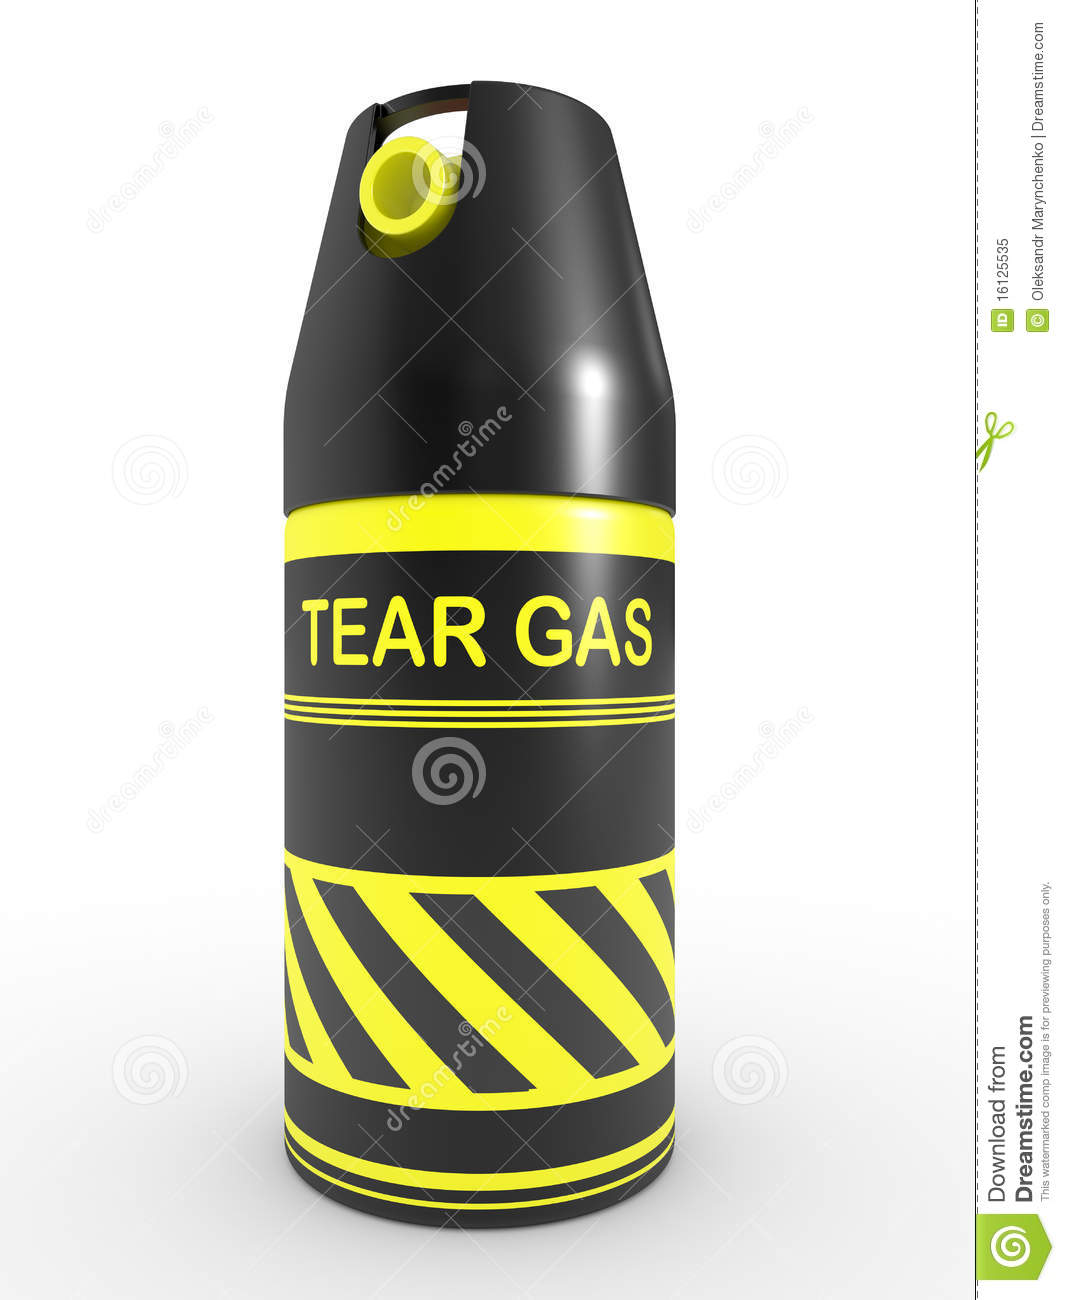 Tear Gas Royalty Free Stock Photo - Image: 16125535